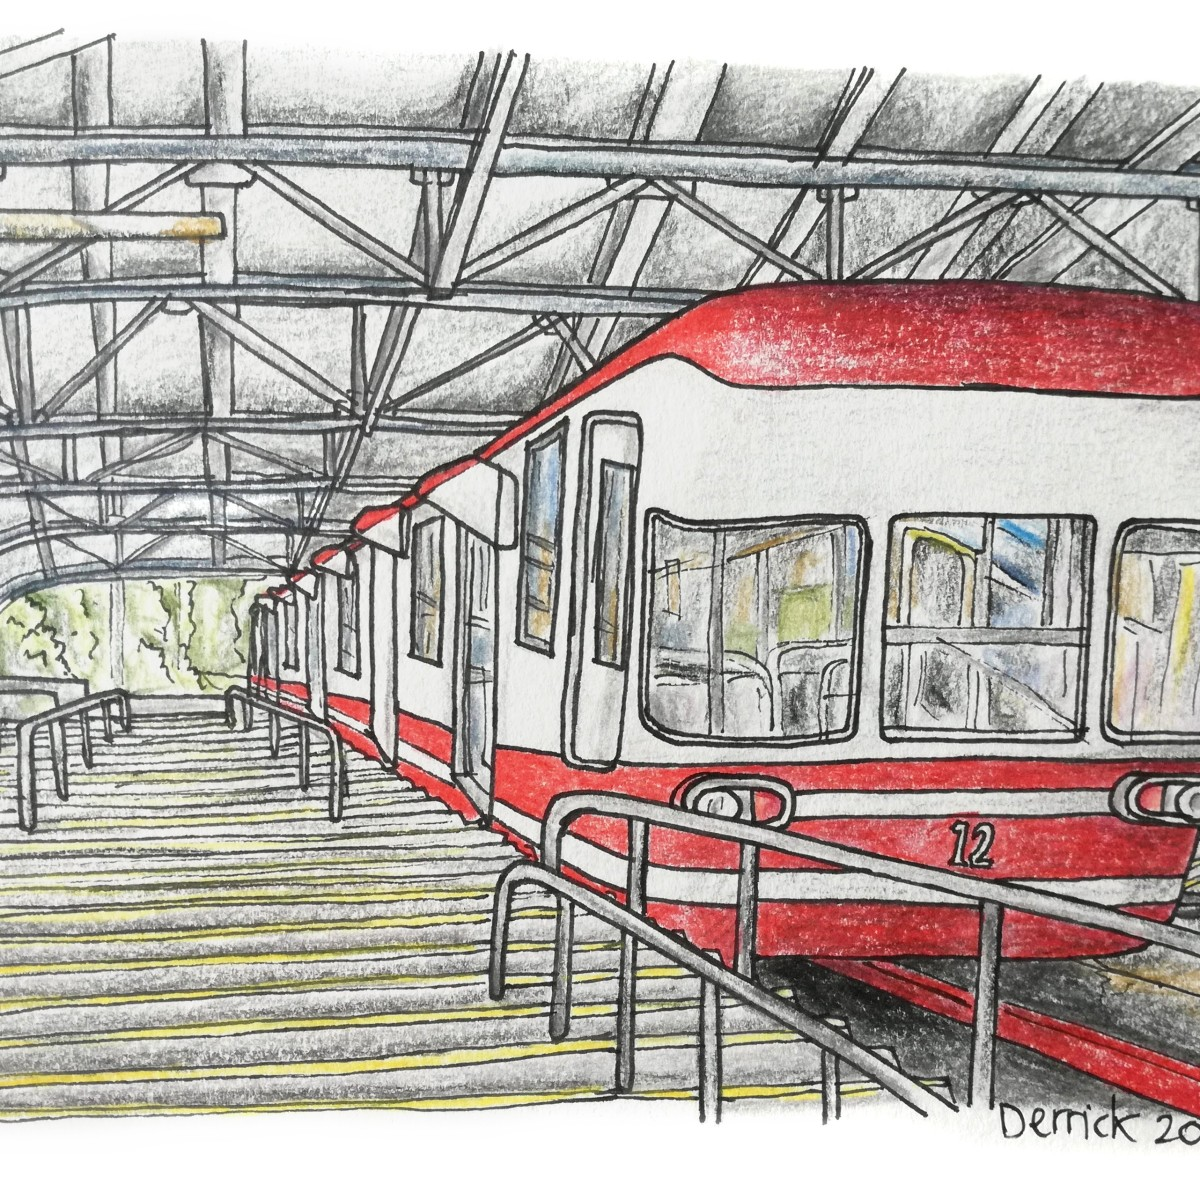 Sketch of a special japanese train to reach Koyasan